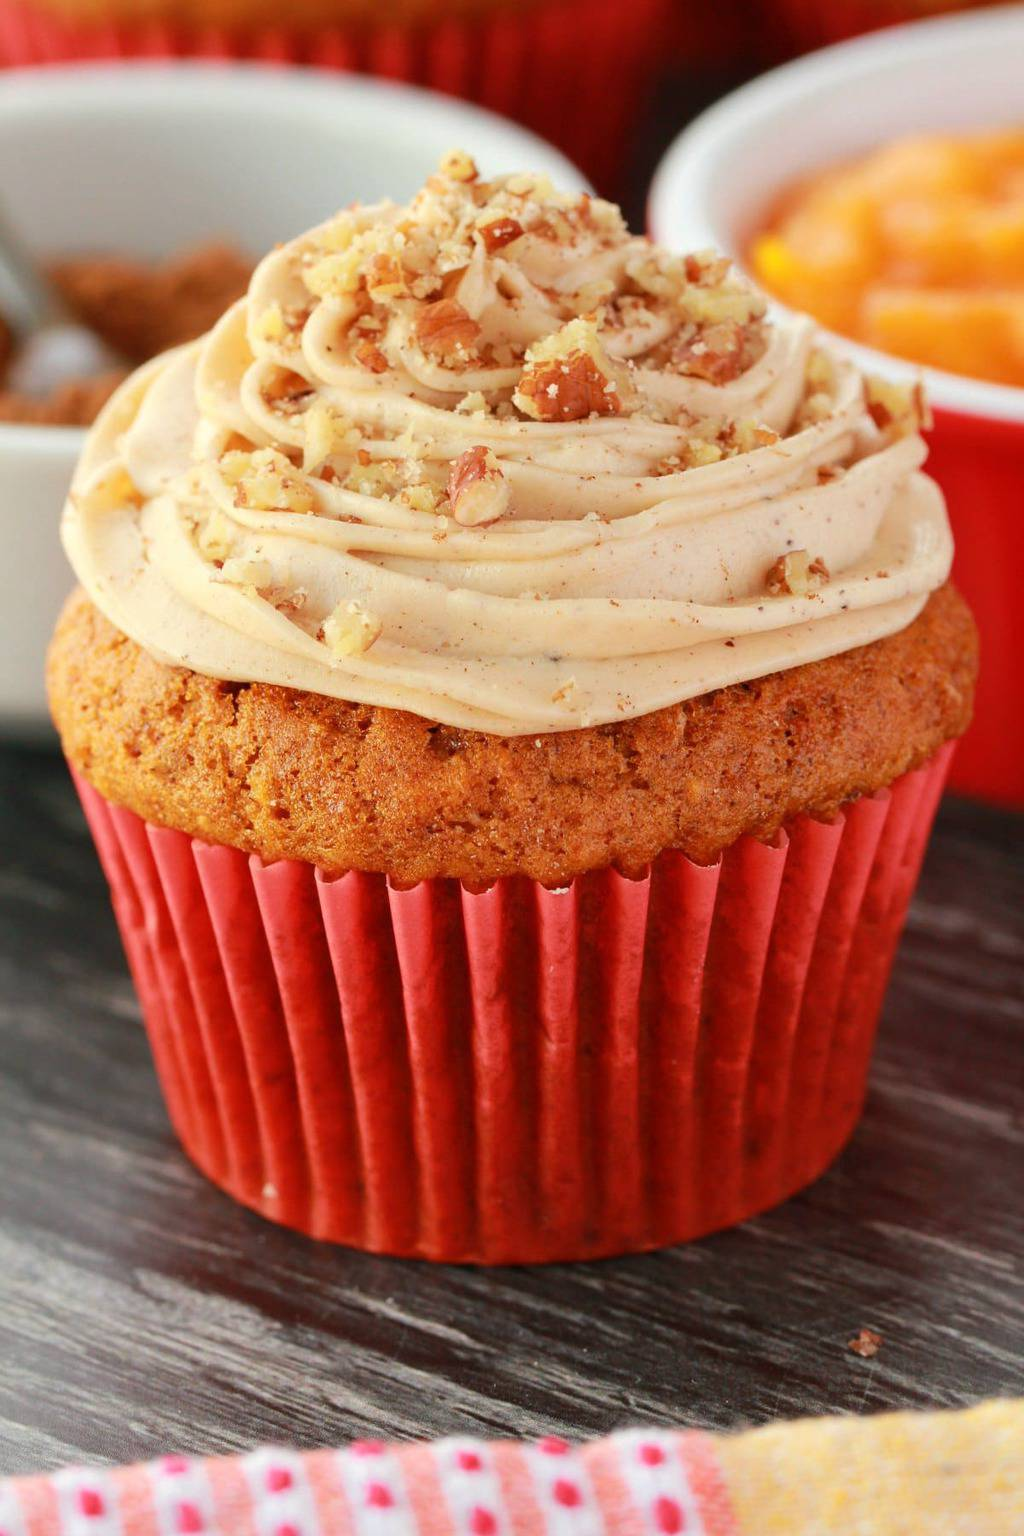 Vegan pumpkin cupcake topped with pumpkin spice frosting and crushed pecans.